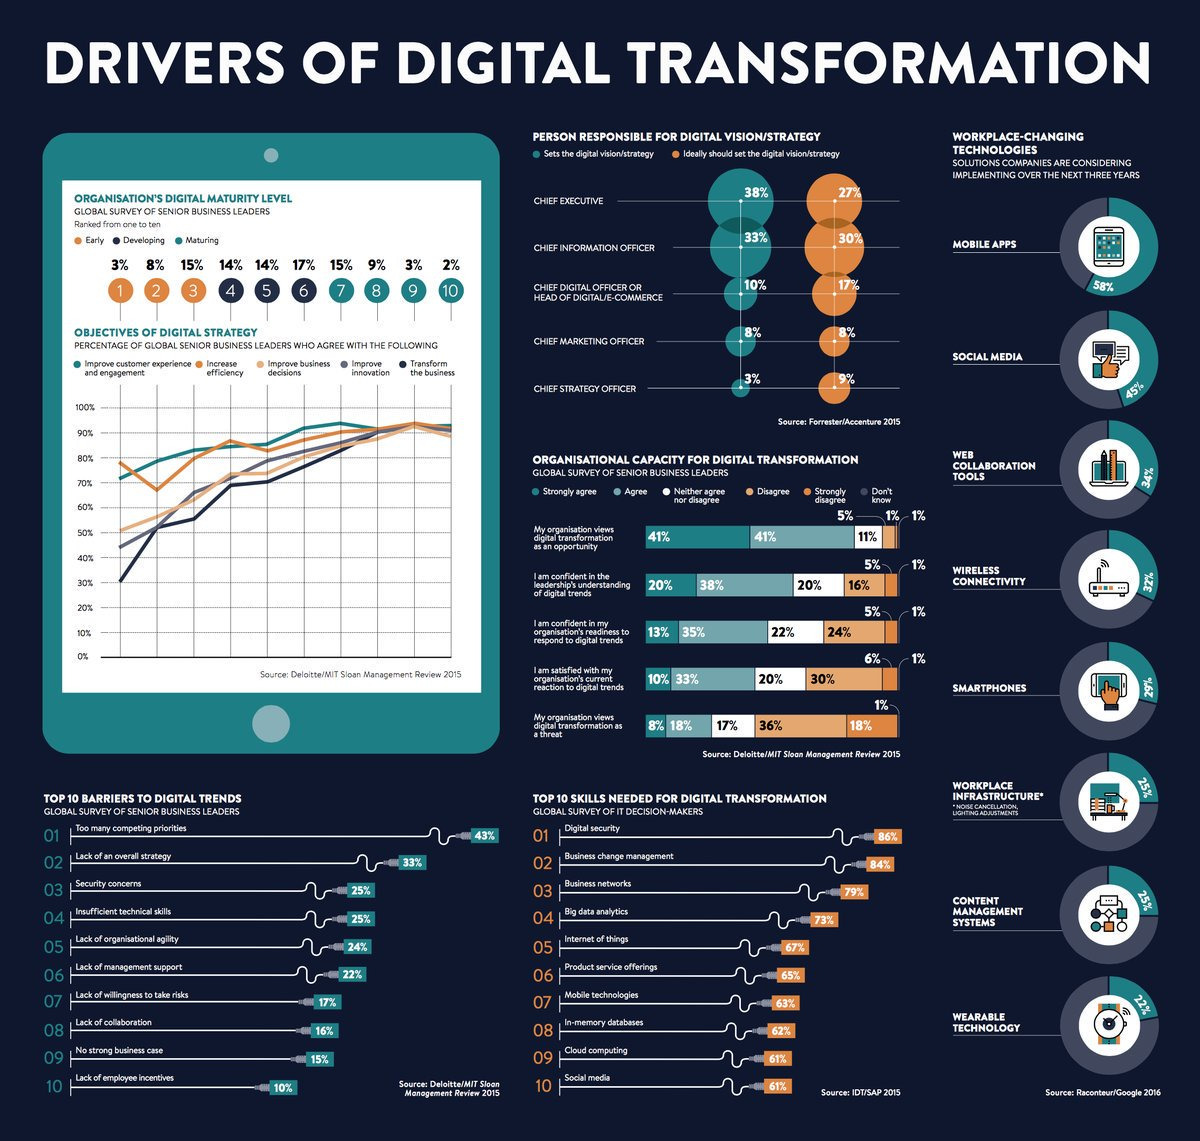 Top 10 Drivers Barriers and Skills for #DigitalTransformation RT @antgrasso  @JimMarous   http:// bit.ly/2ohVcYT  &nbsp;                #Digital #TransfoNum #numerique #Management #innovation #disruption #TechTrends #Marketing #strategy #strategie #startup #startups<br>http://pic.twitter.com/kMpc9q33a9